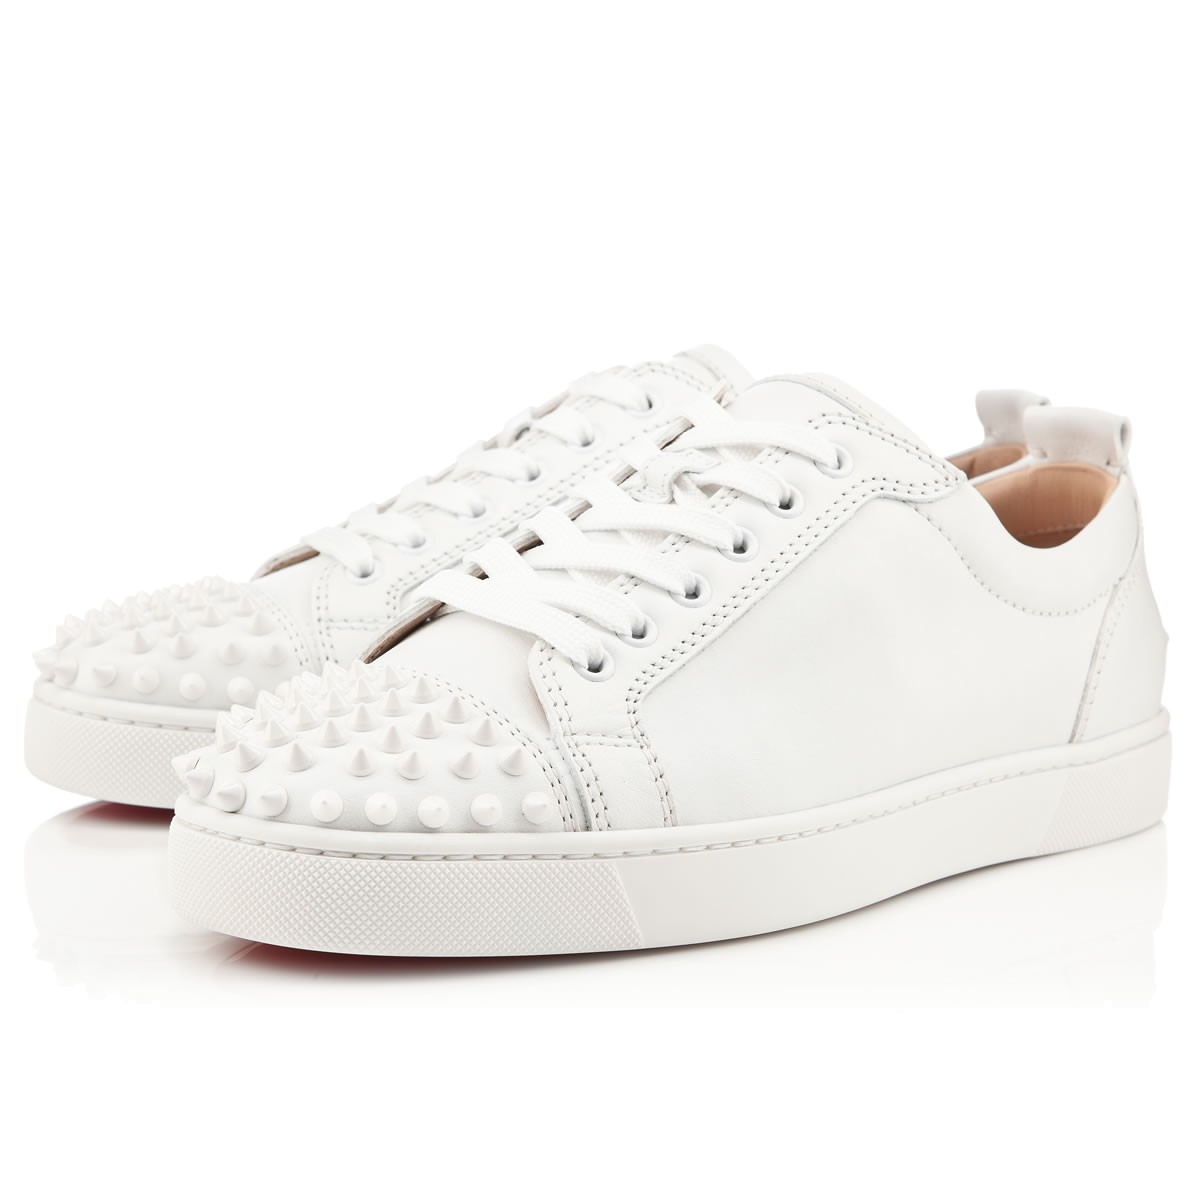 outlet store 45e1f a5a84 Louis Junior Spikes White/White Leather - Men Shoes - Christian Louboutin